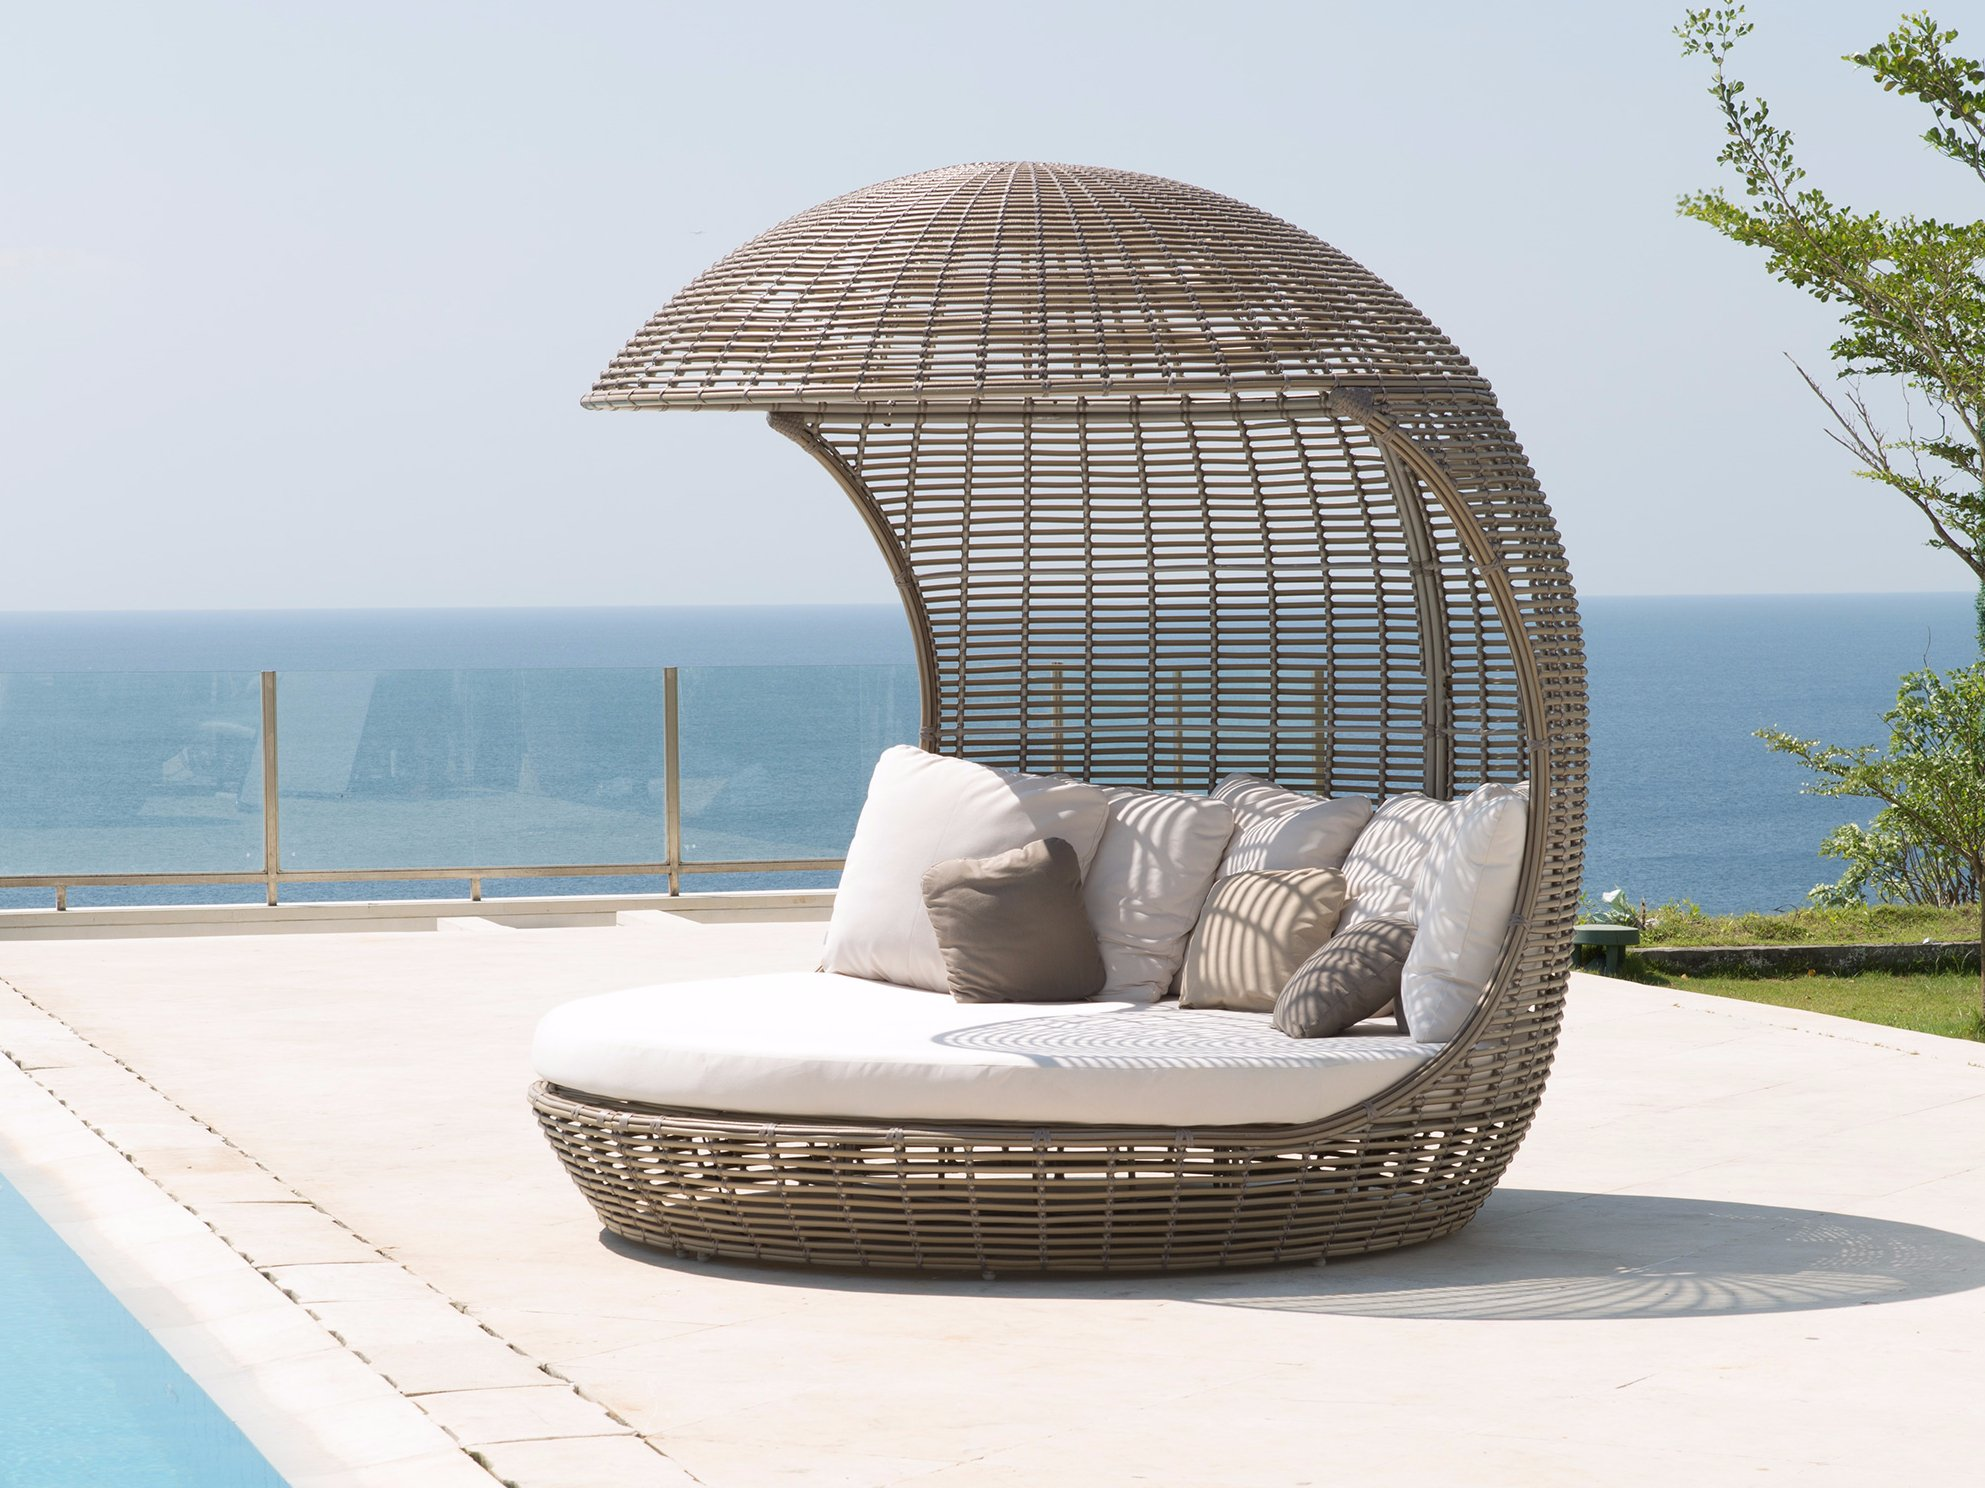 Lit de jardin igloo cancun 23282 collection occasionals by skyline design - Lit de jardin ...